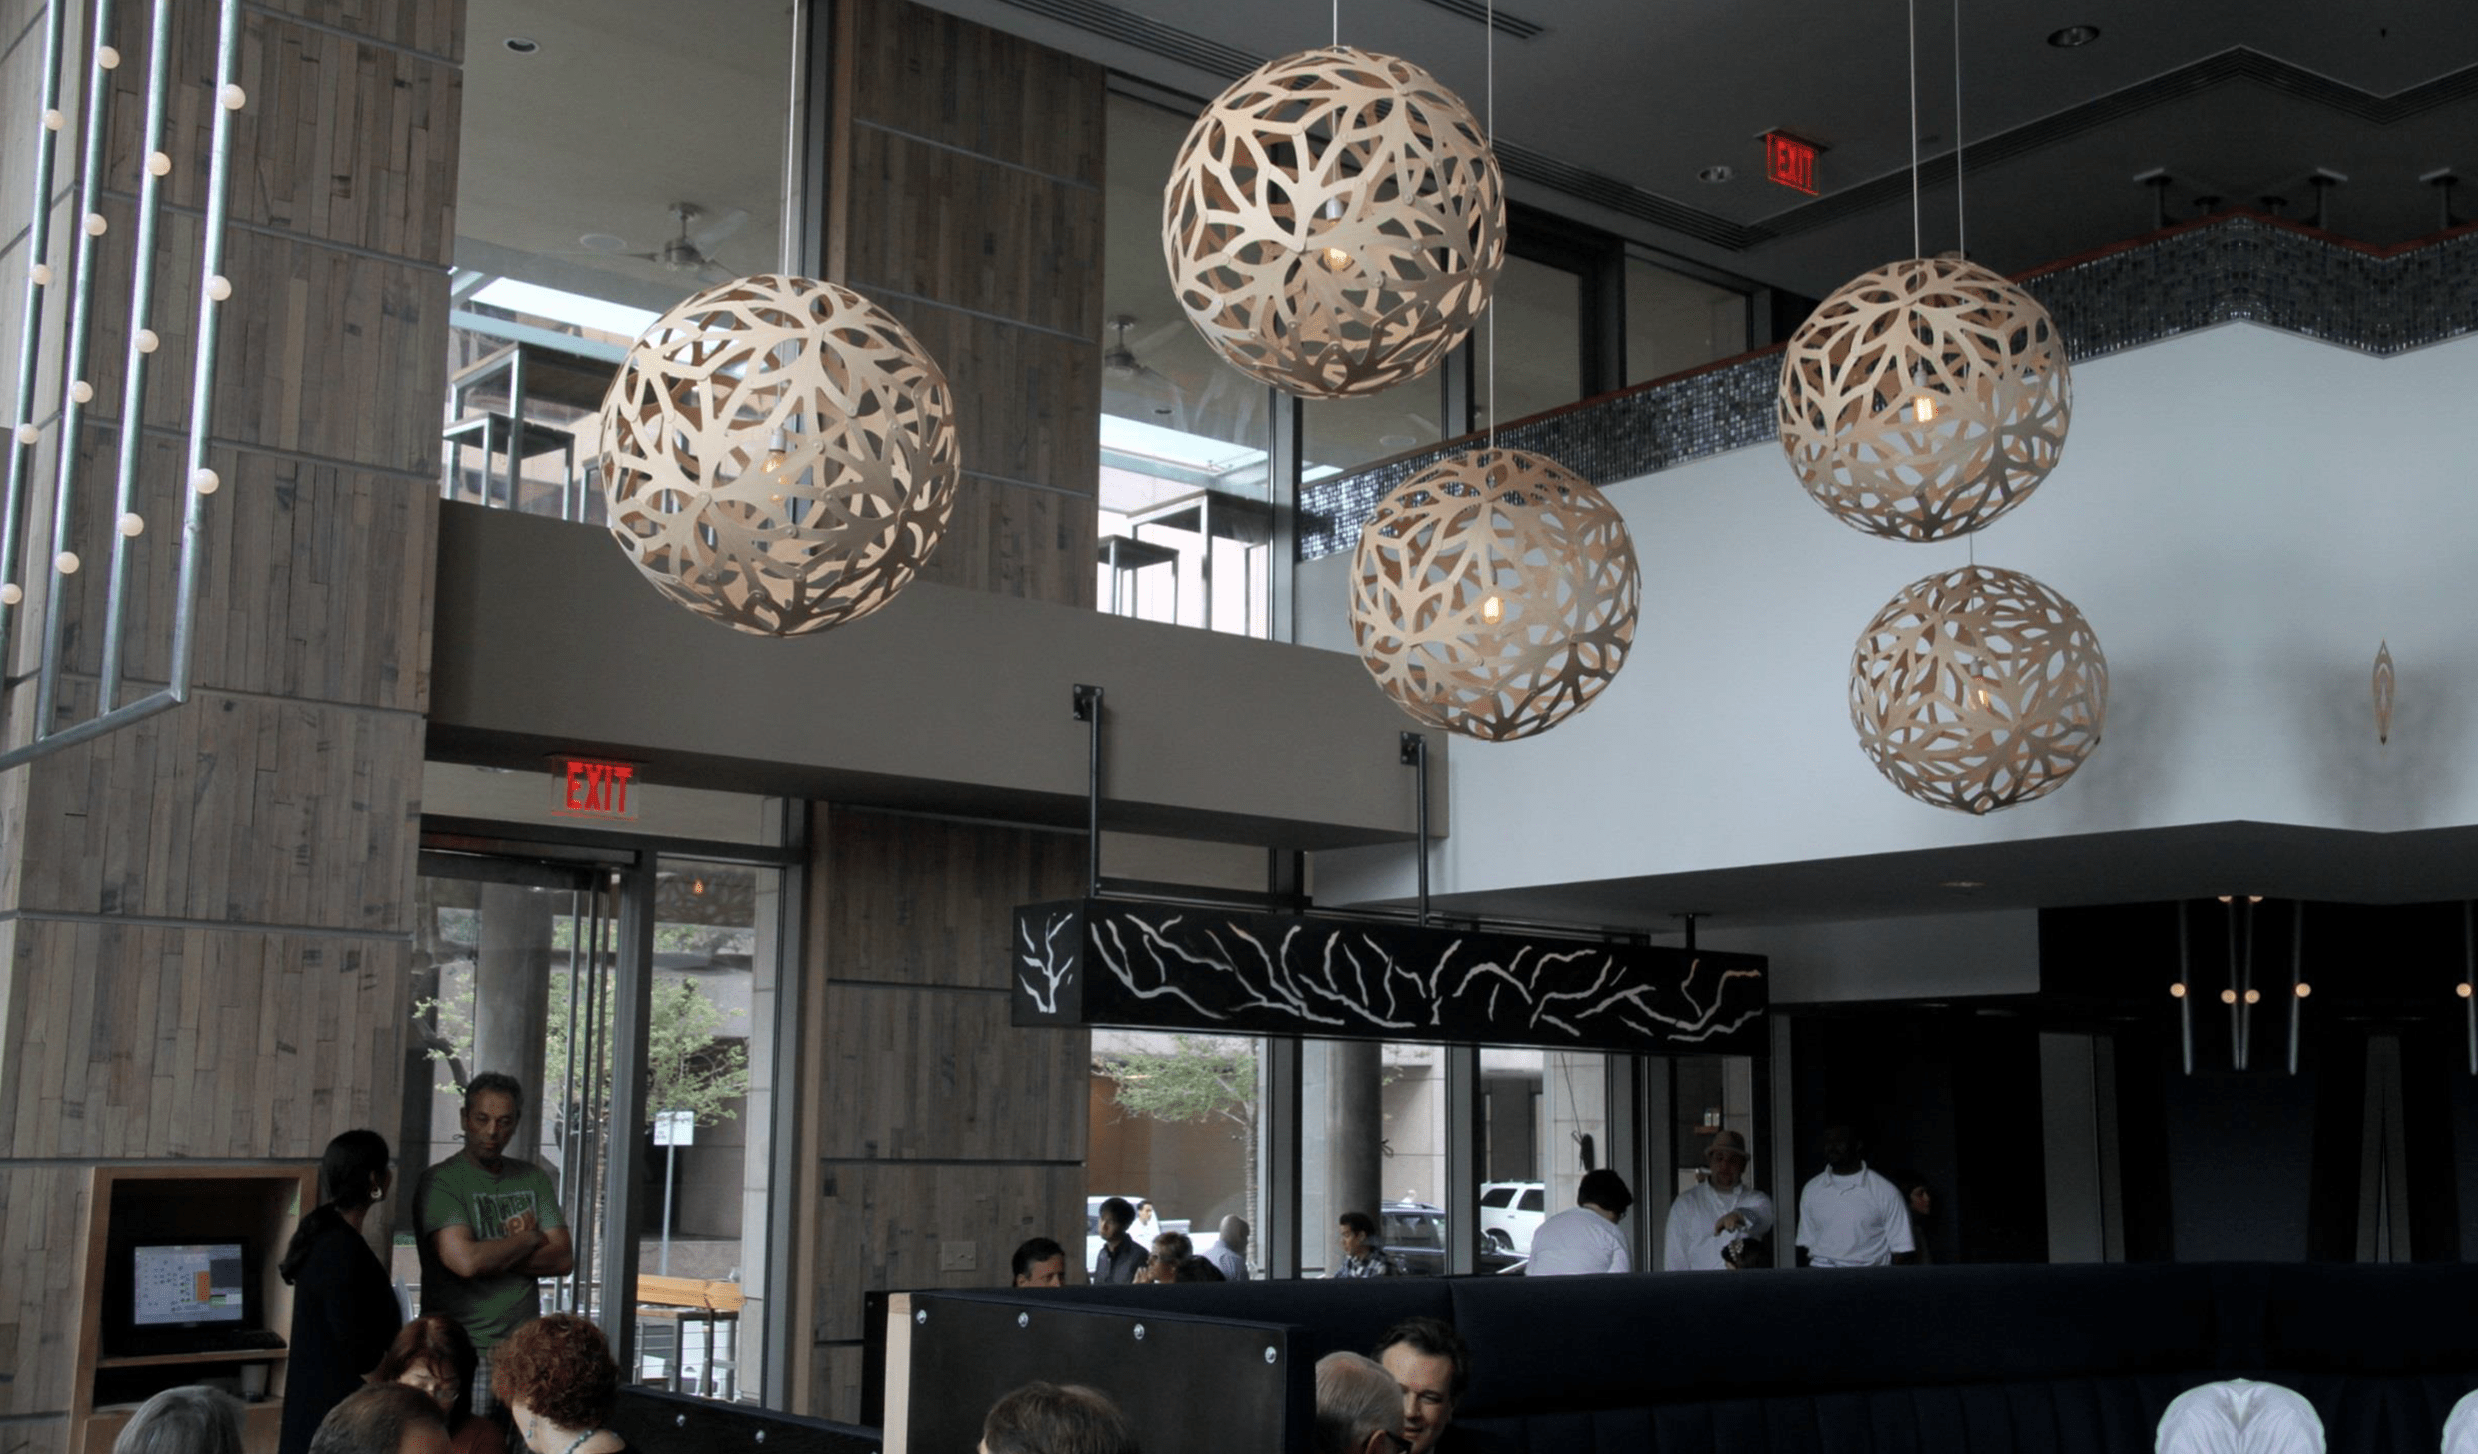 Peachy Modern Lamps Miami Download Free Architecture Designs Sospemadebymaigaardcom